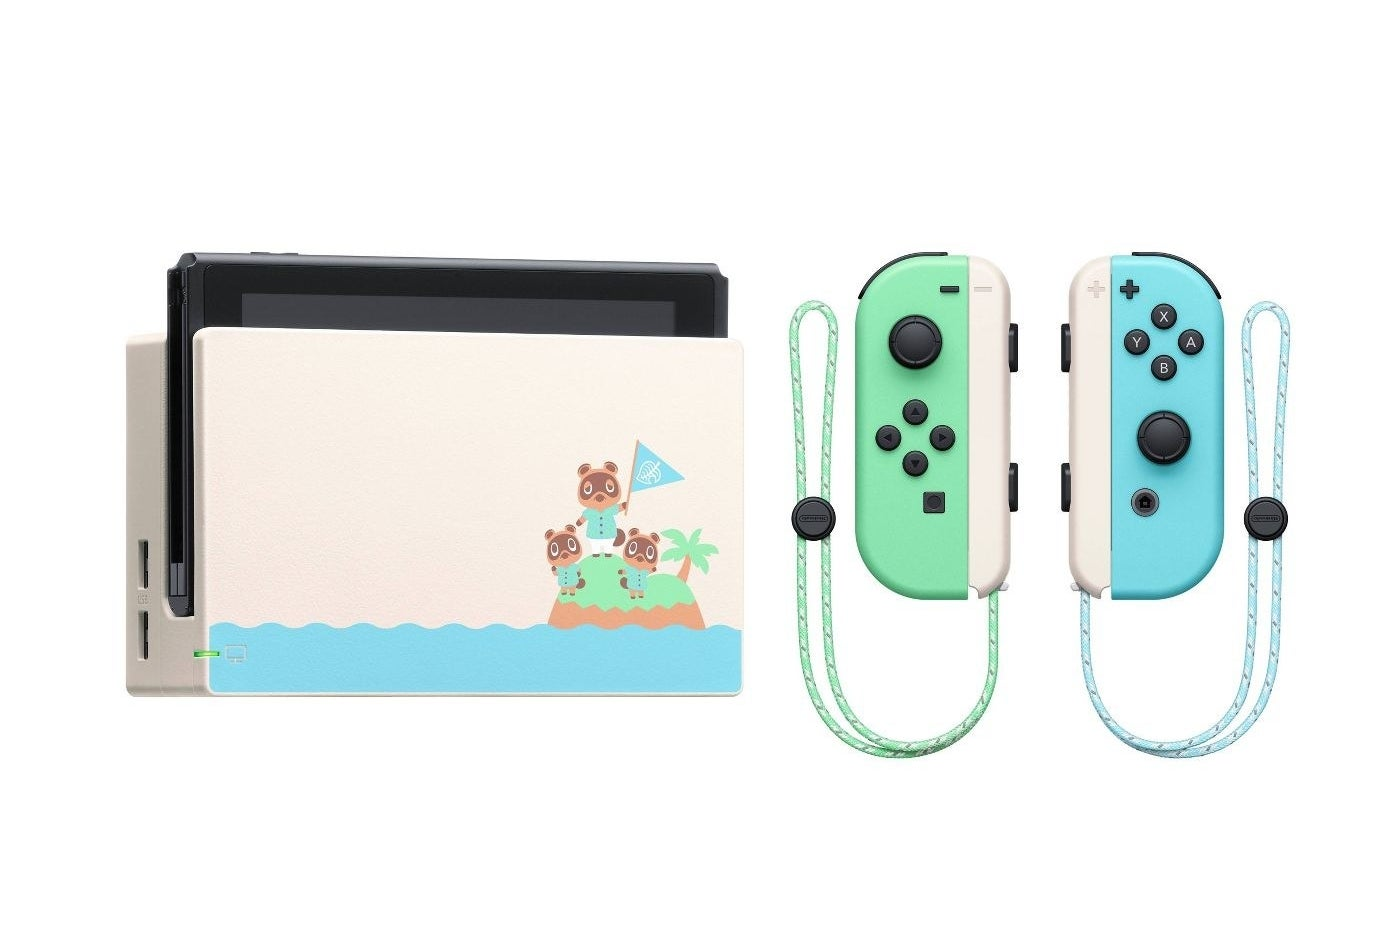 """Nintendo Switch with an """"Animal Crossing"""" design on the dock and two Joy-Cons next to it"""